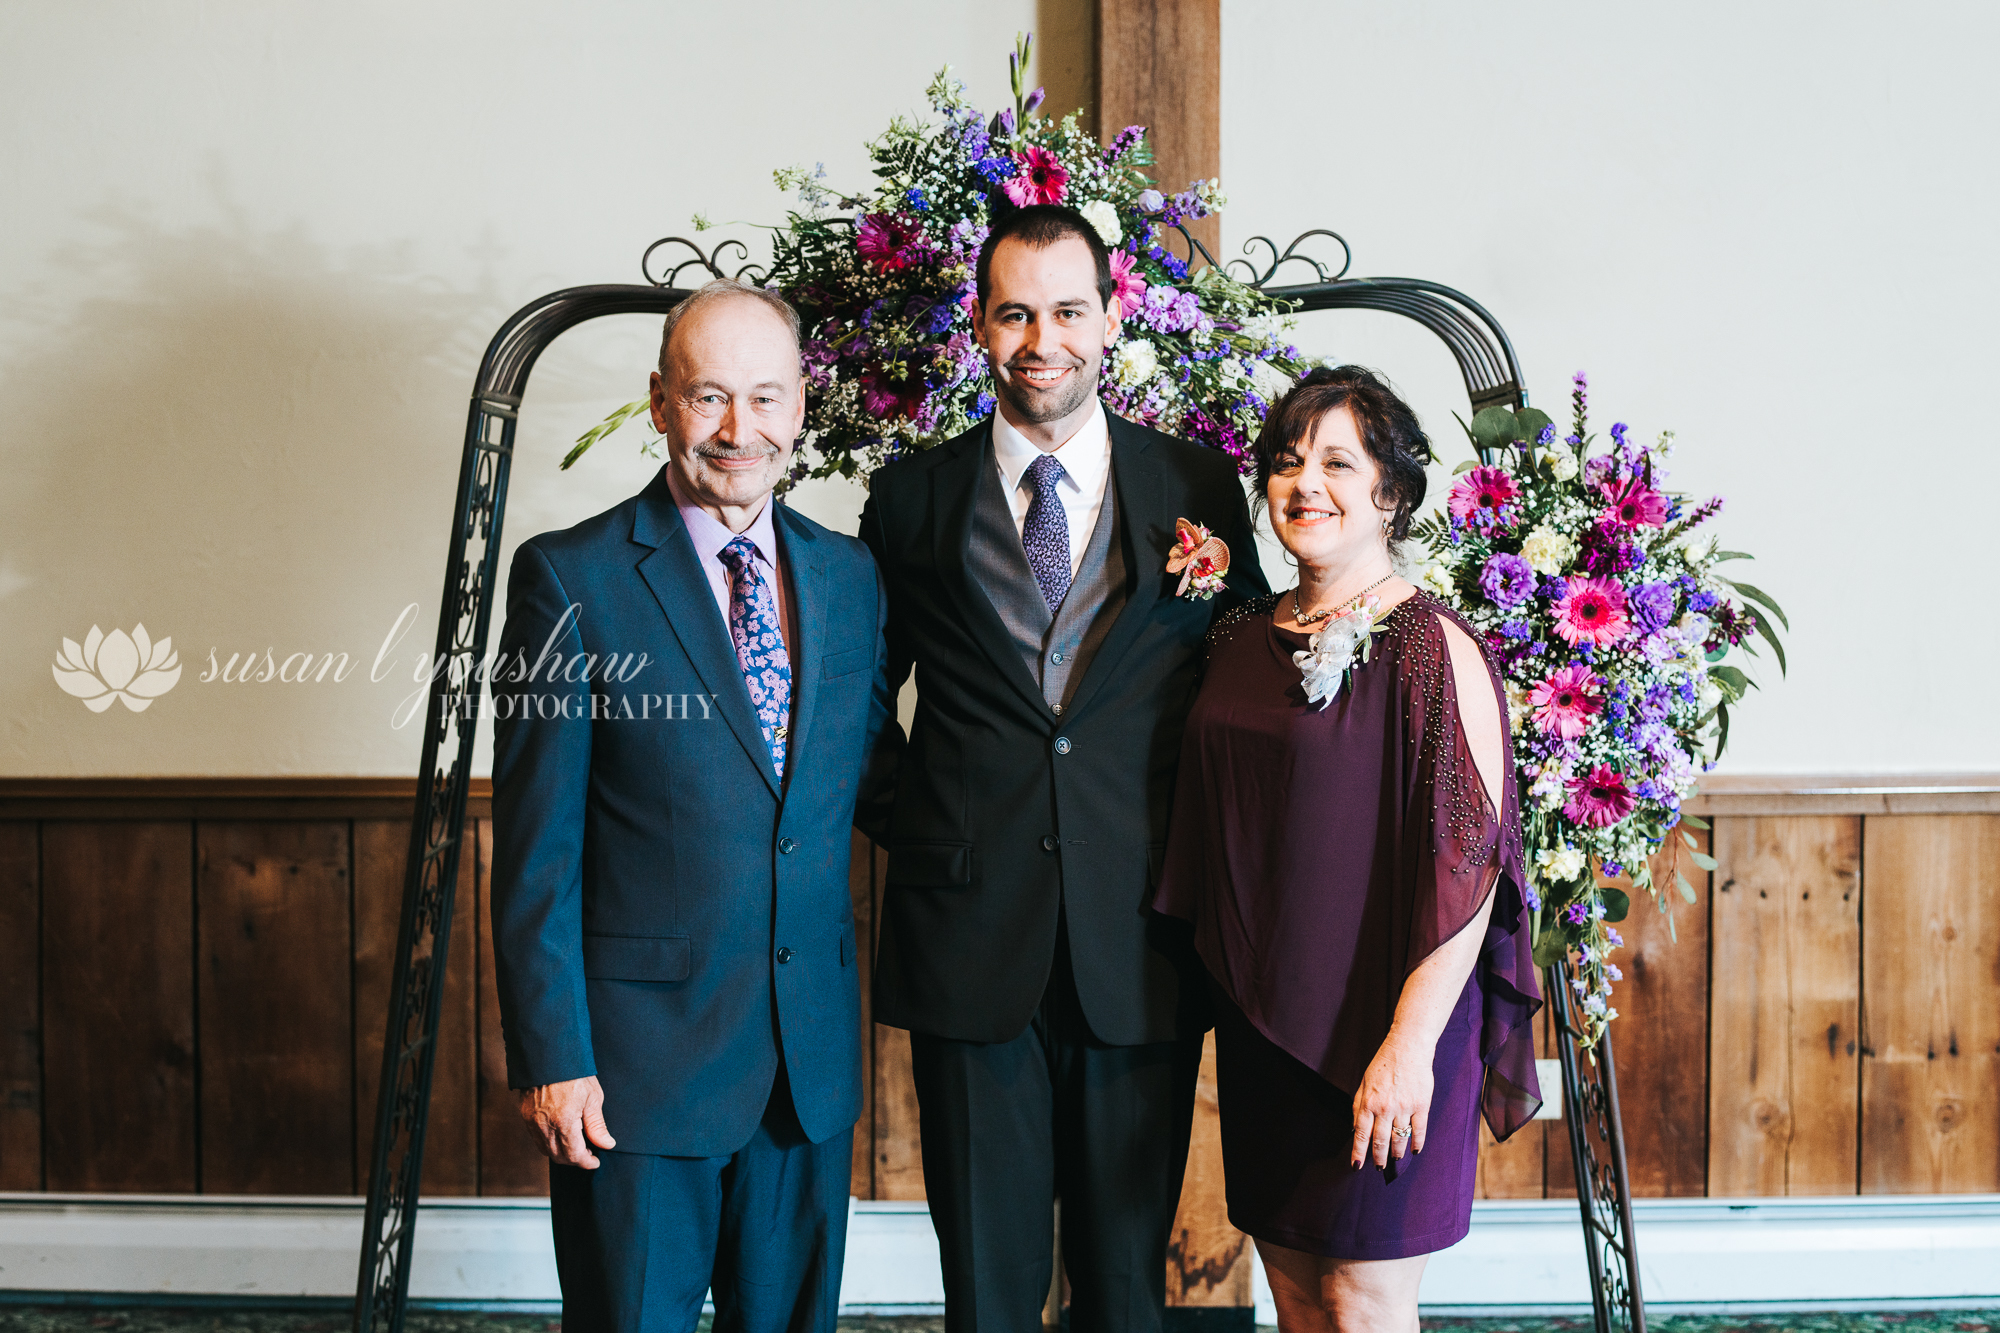 Adena and  Erik Wedding 05-17-2019 SLY Photography-57.jpg